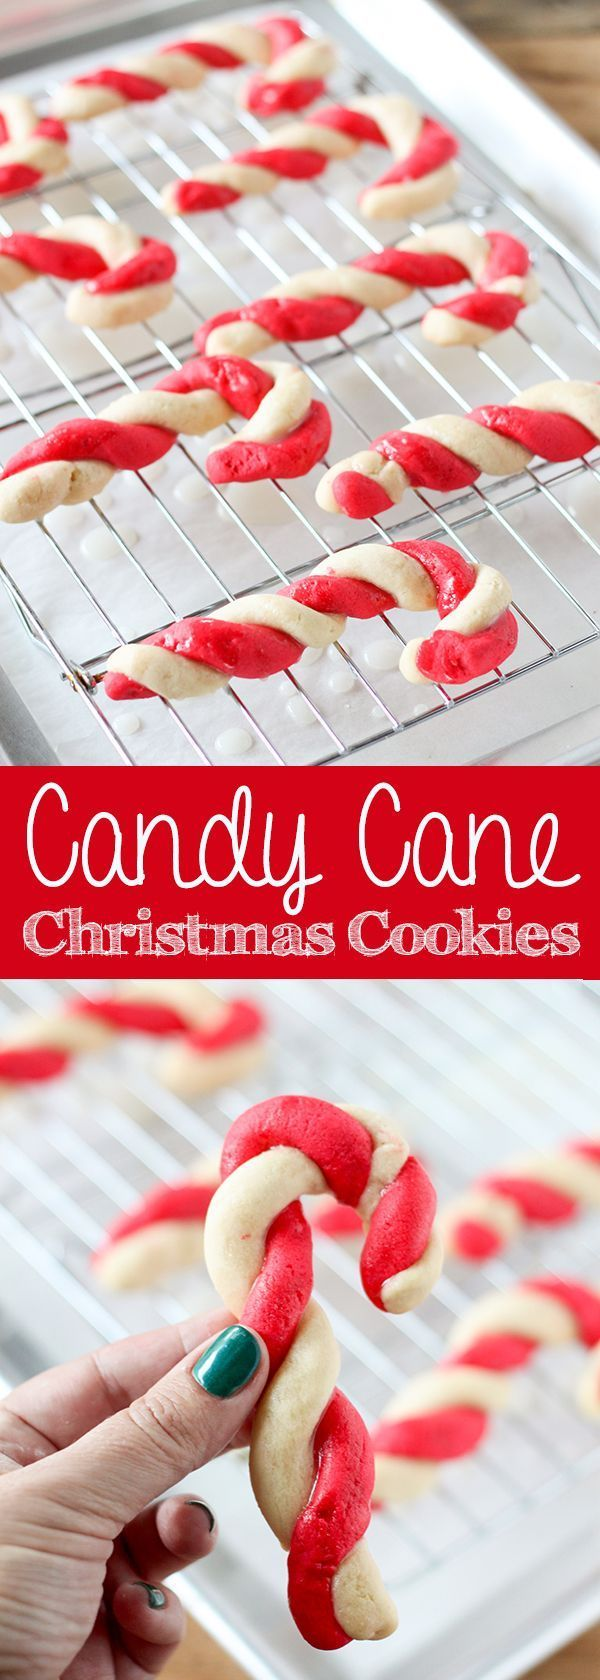 42 Best Holiday Baking Images On Pinterest Dessert Recipes Jill Beauty Lip Matte 12 Coral Cookies Peppermint Candy Cane Christmas